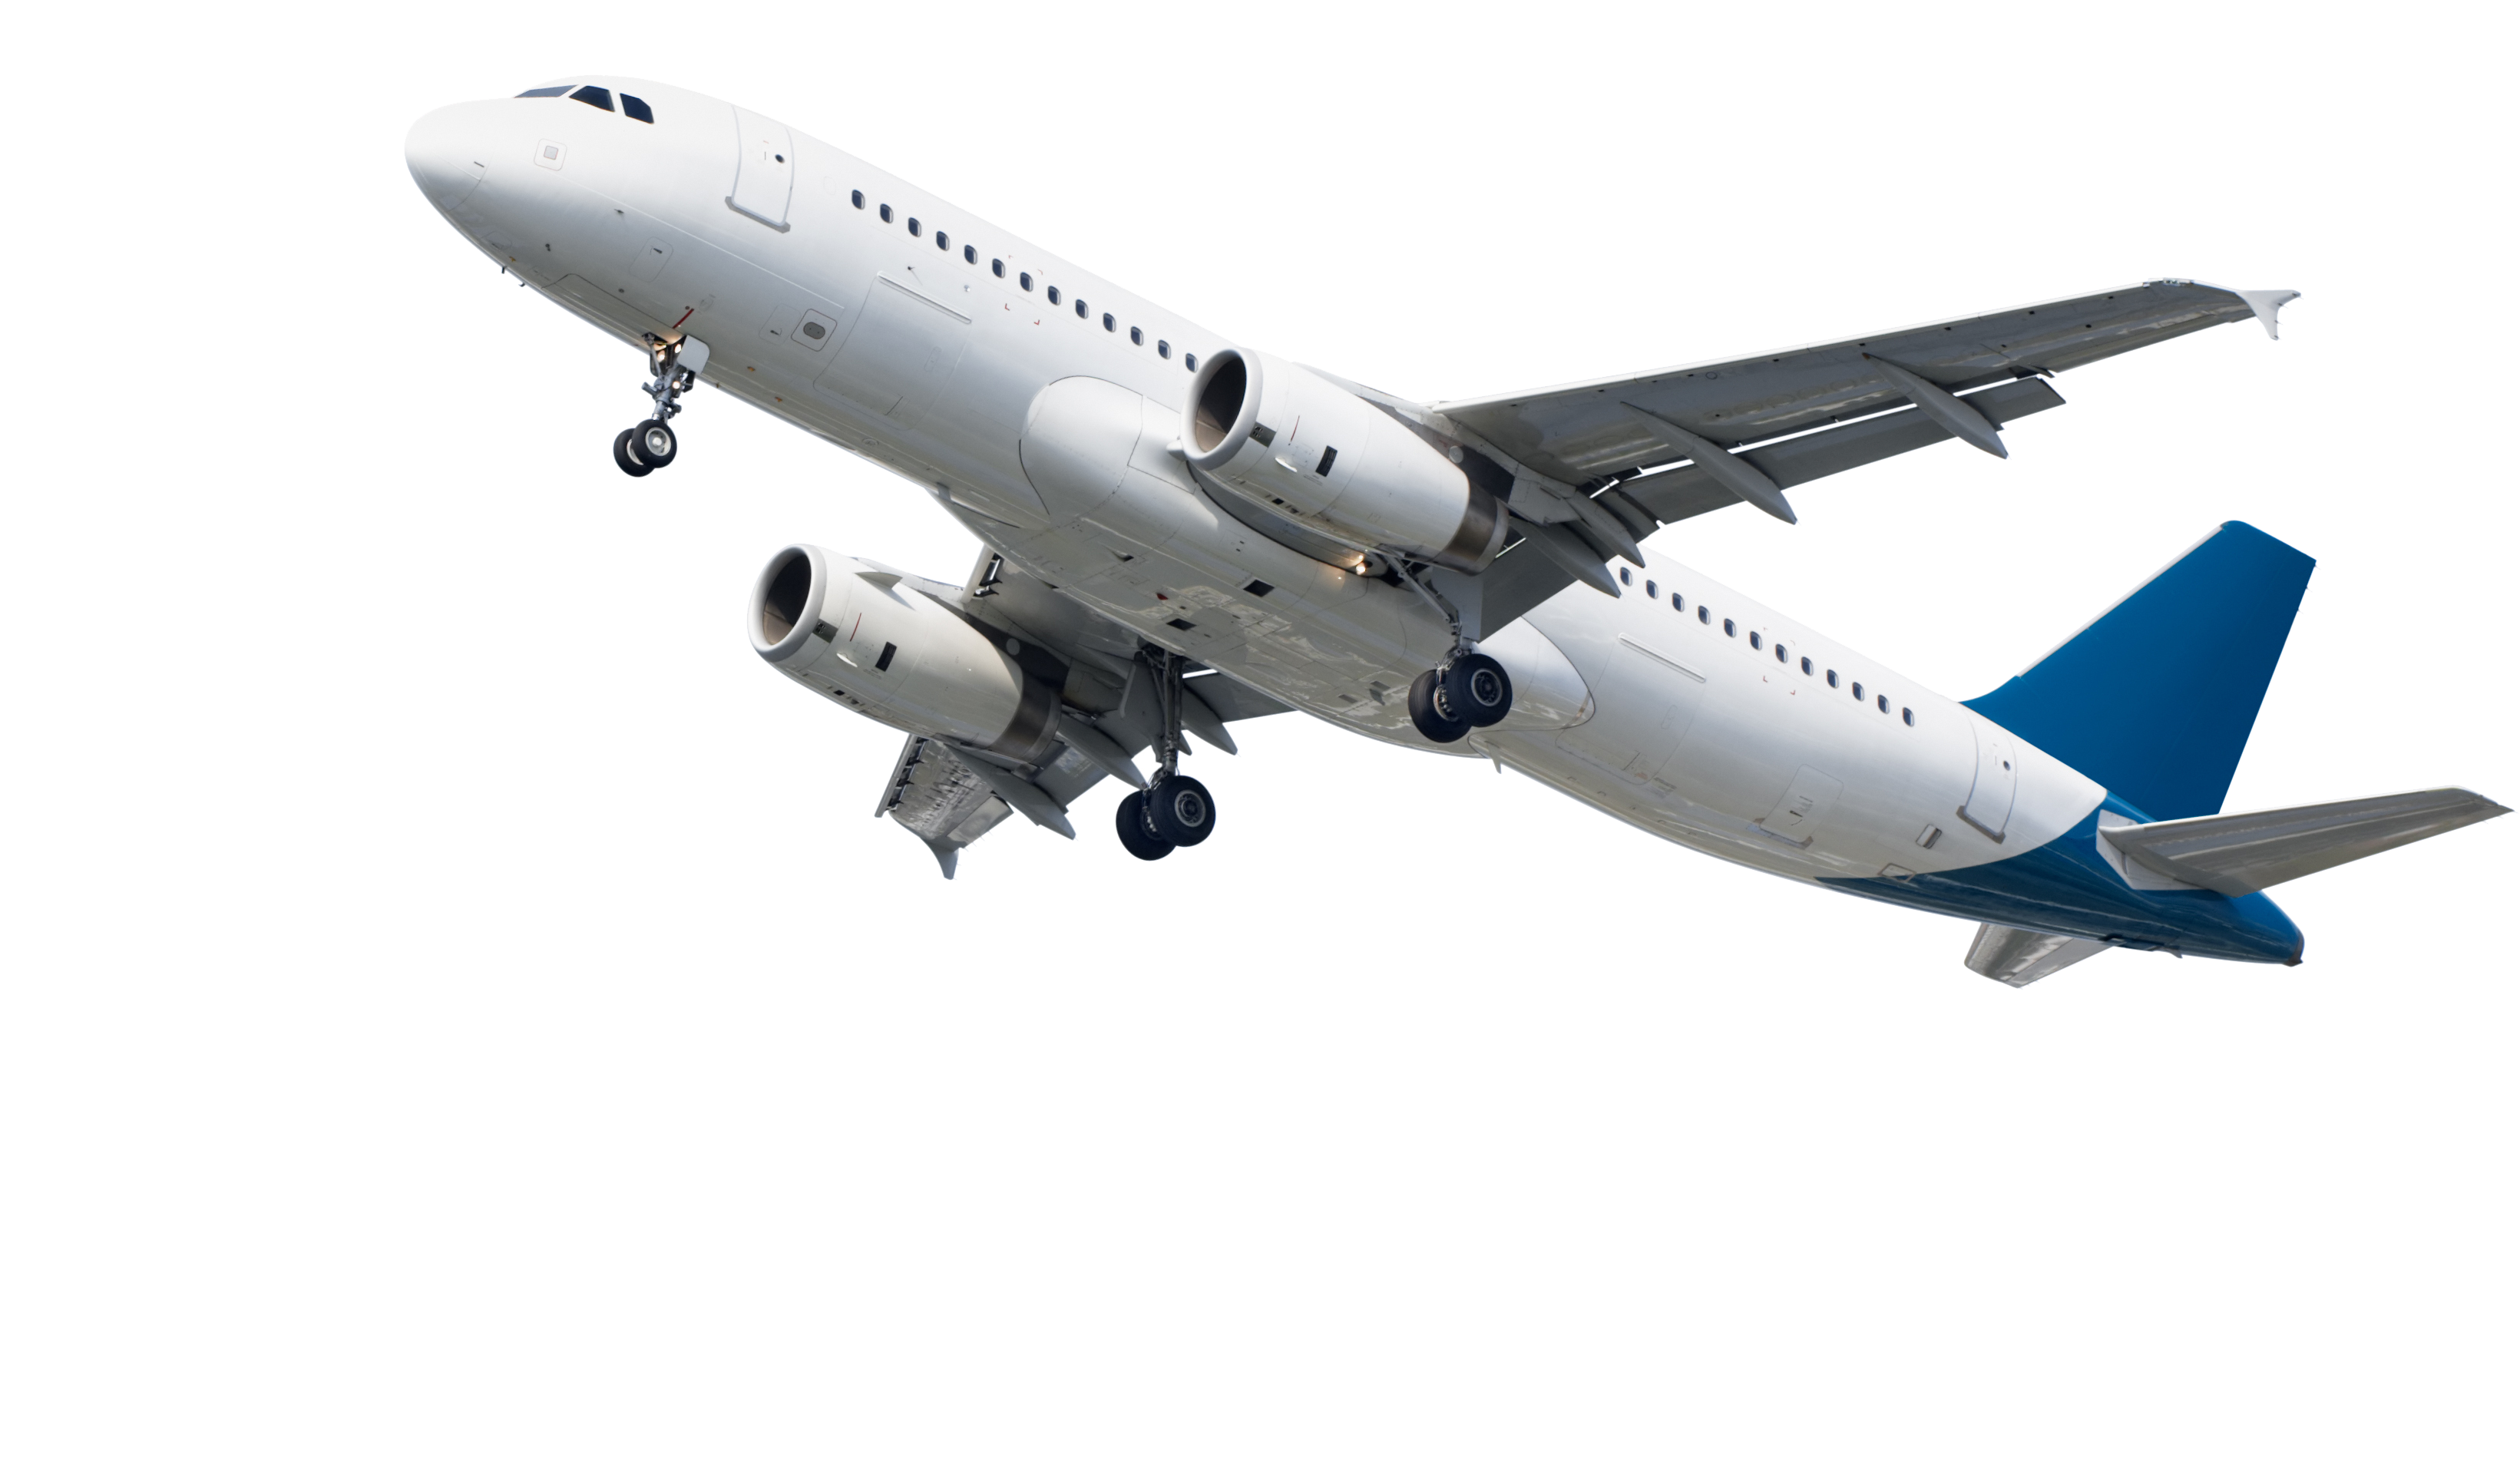 Airplane taking off png. Jet clipart takeoff